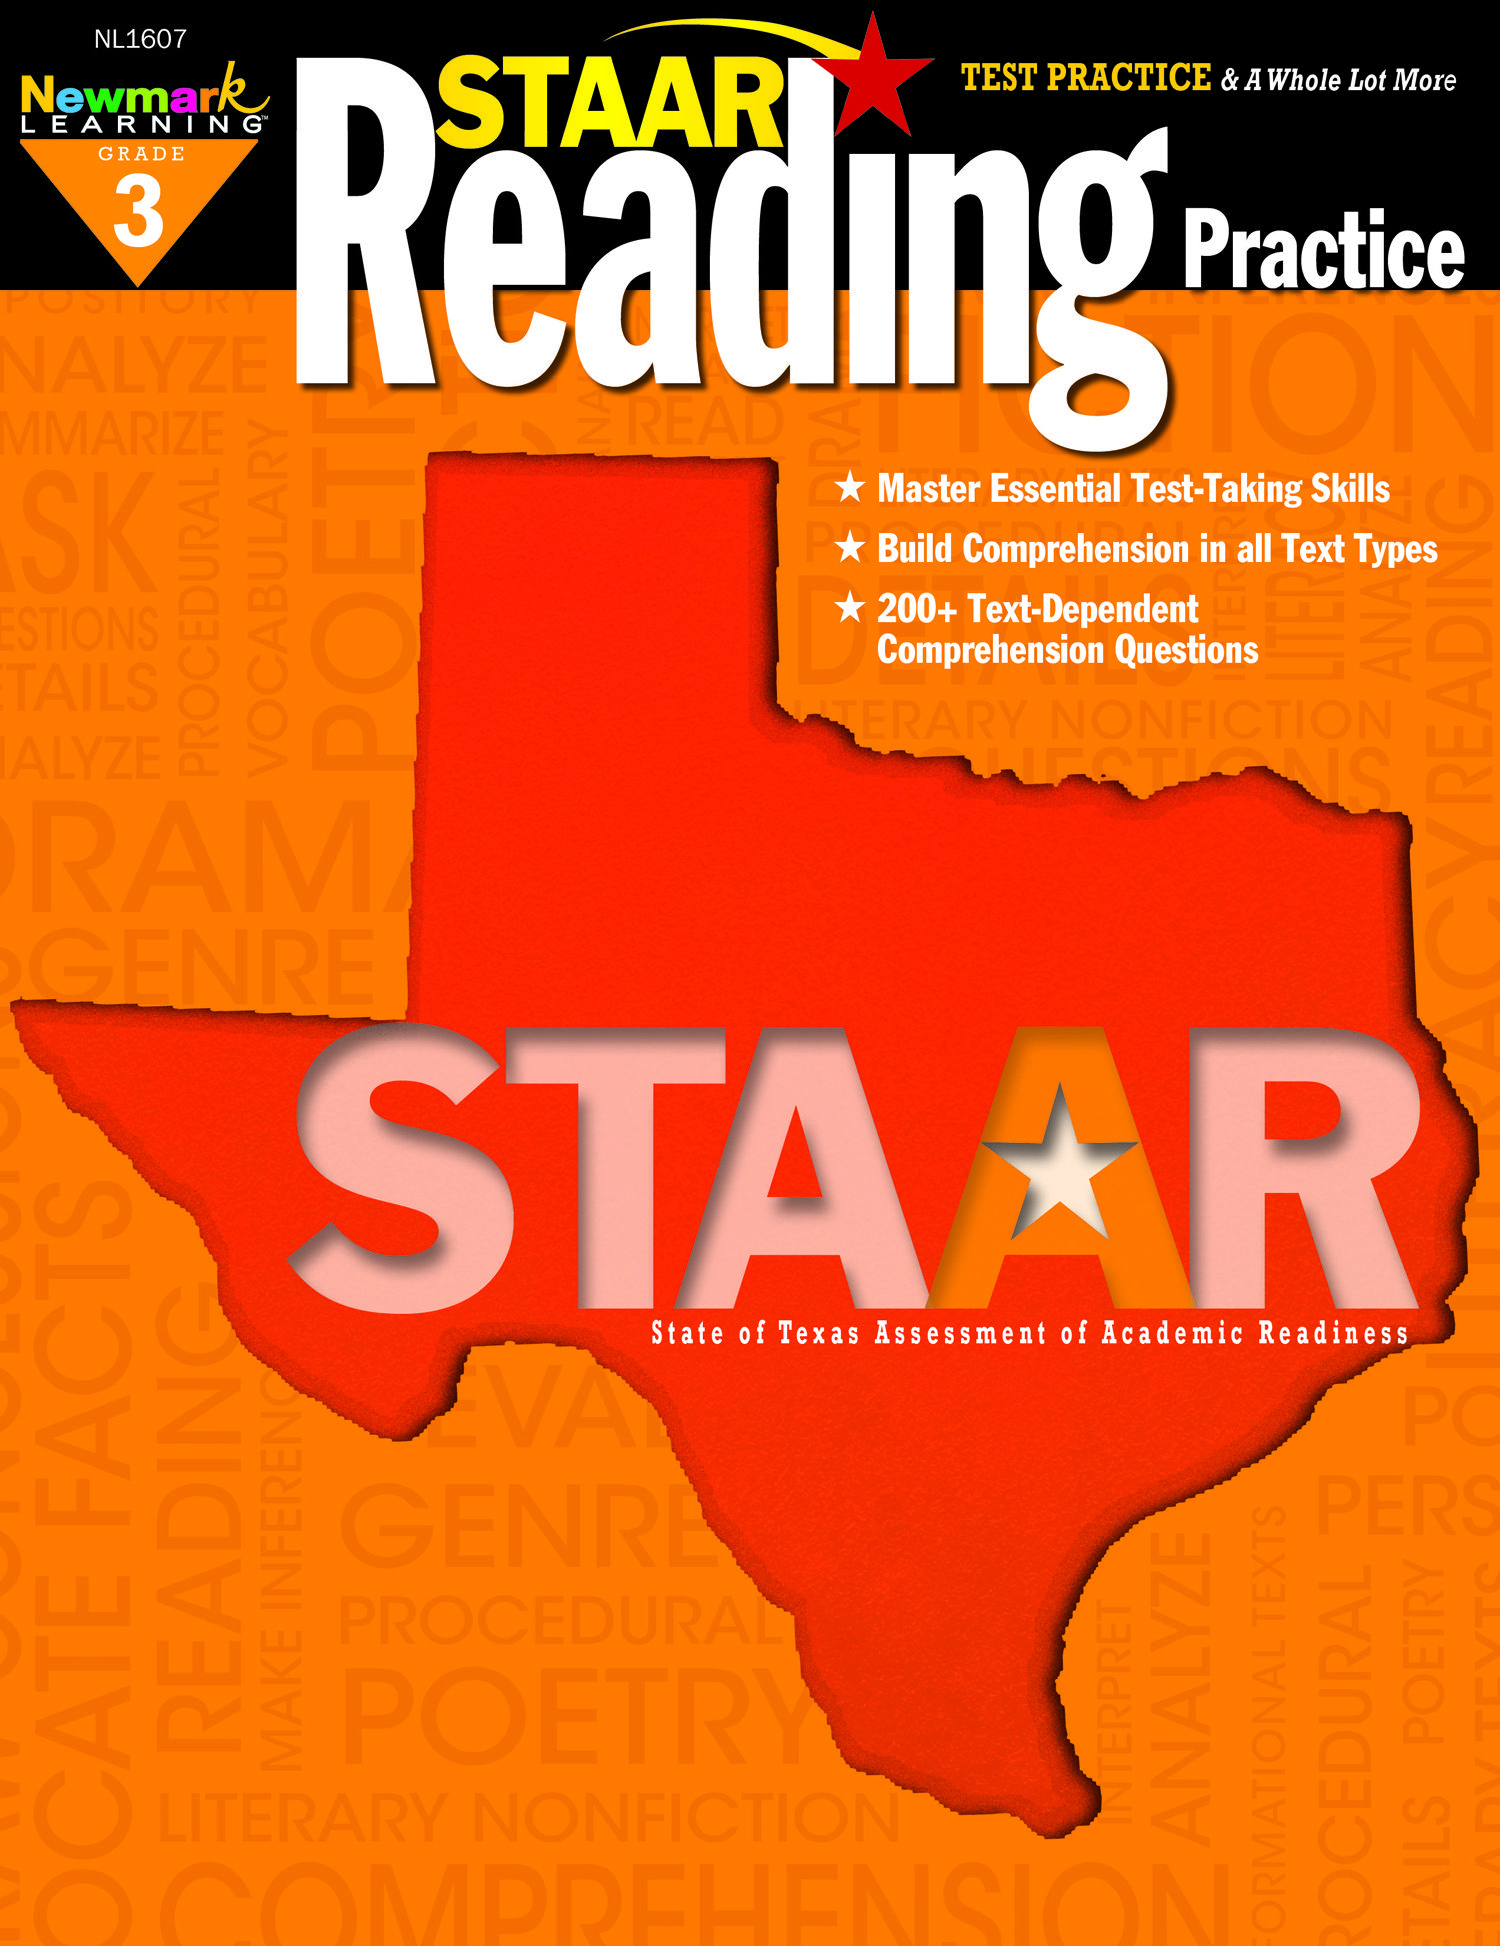 Grade 3 Staar Reading Practice Help Them Learn Reading